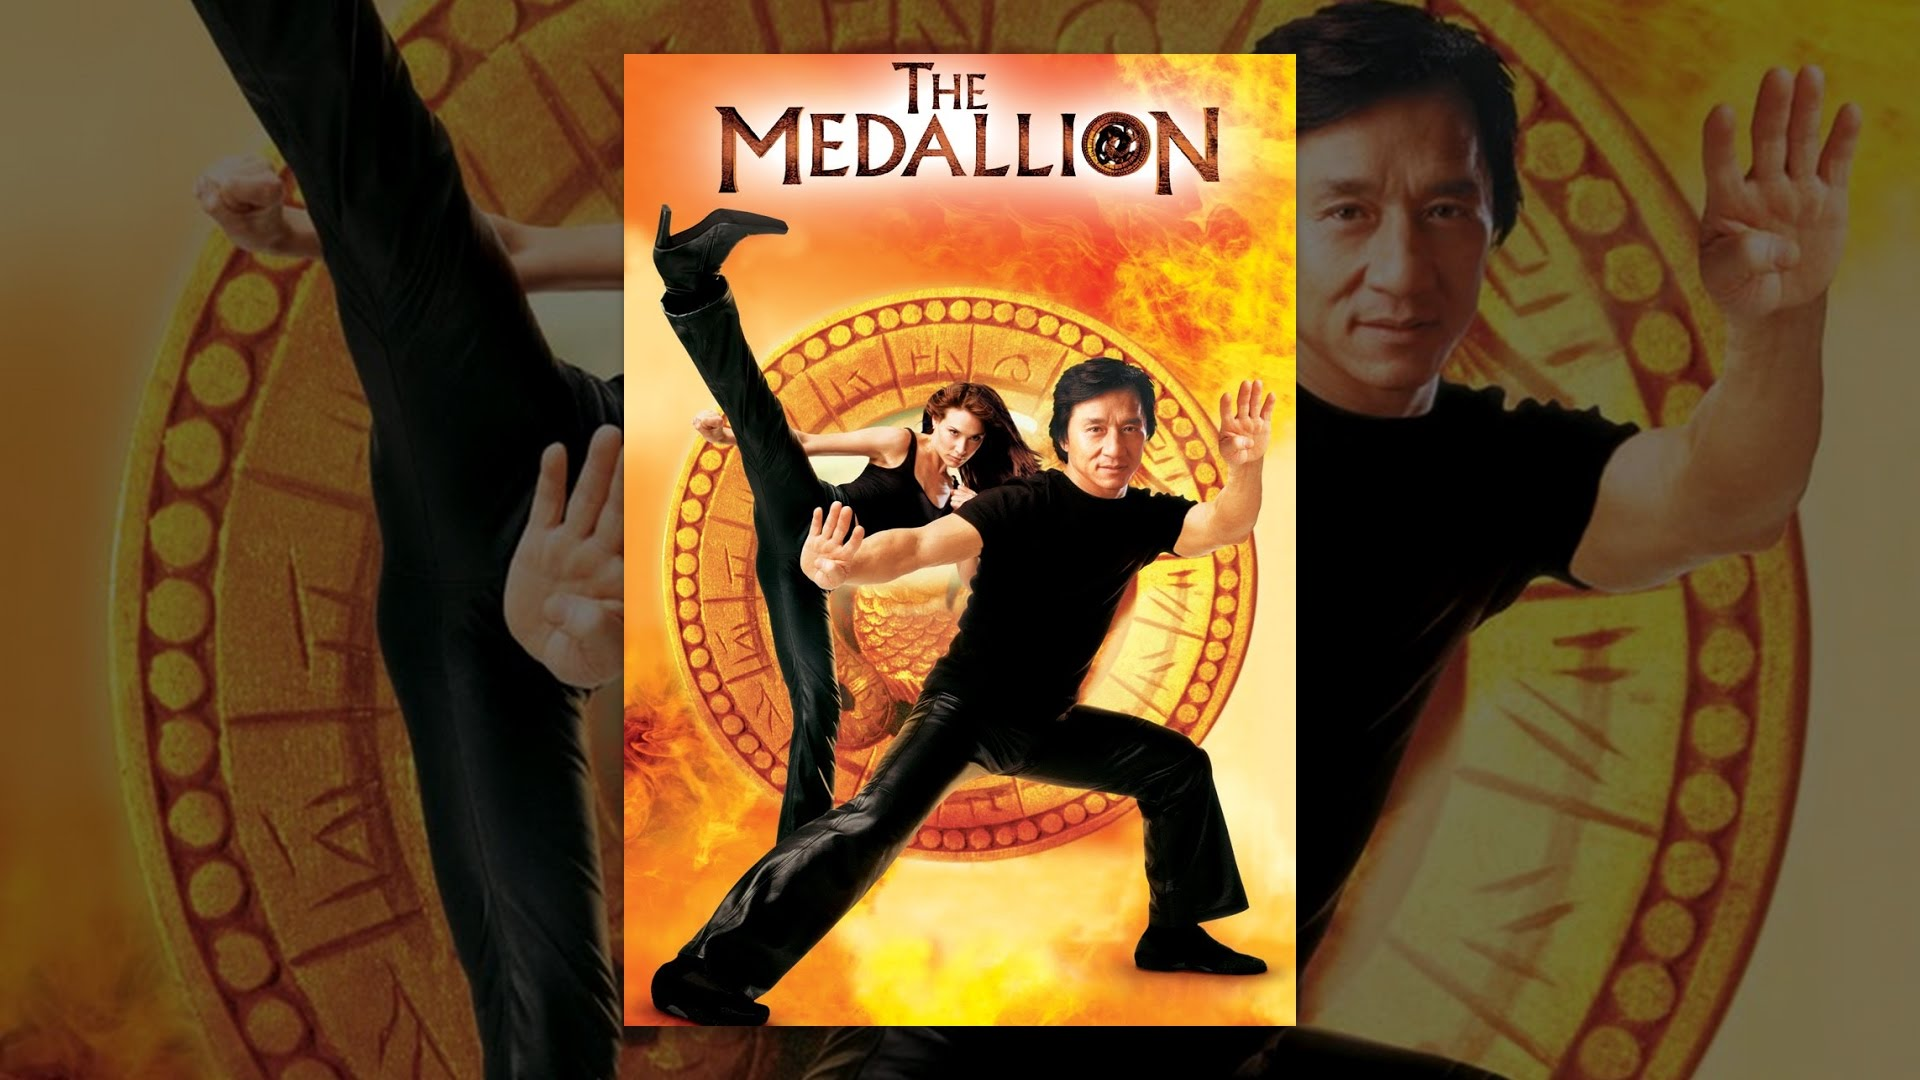 the medallion youtube